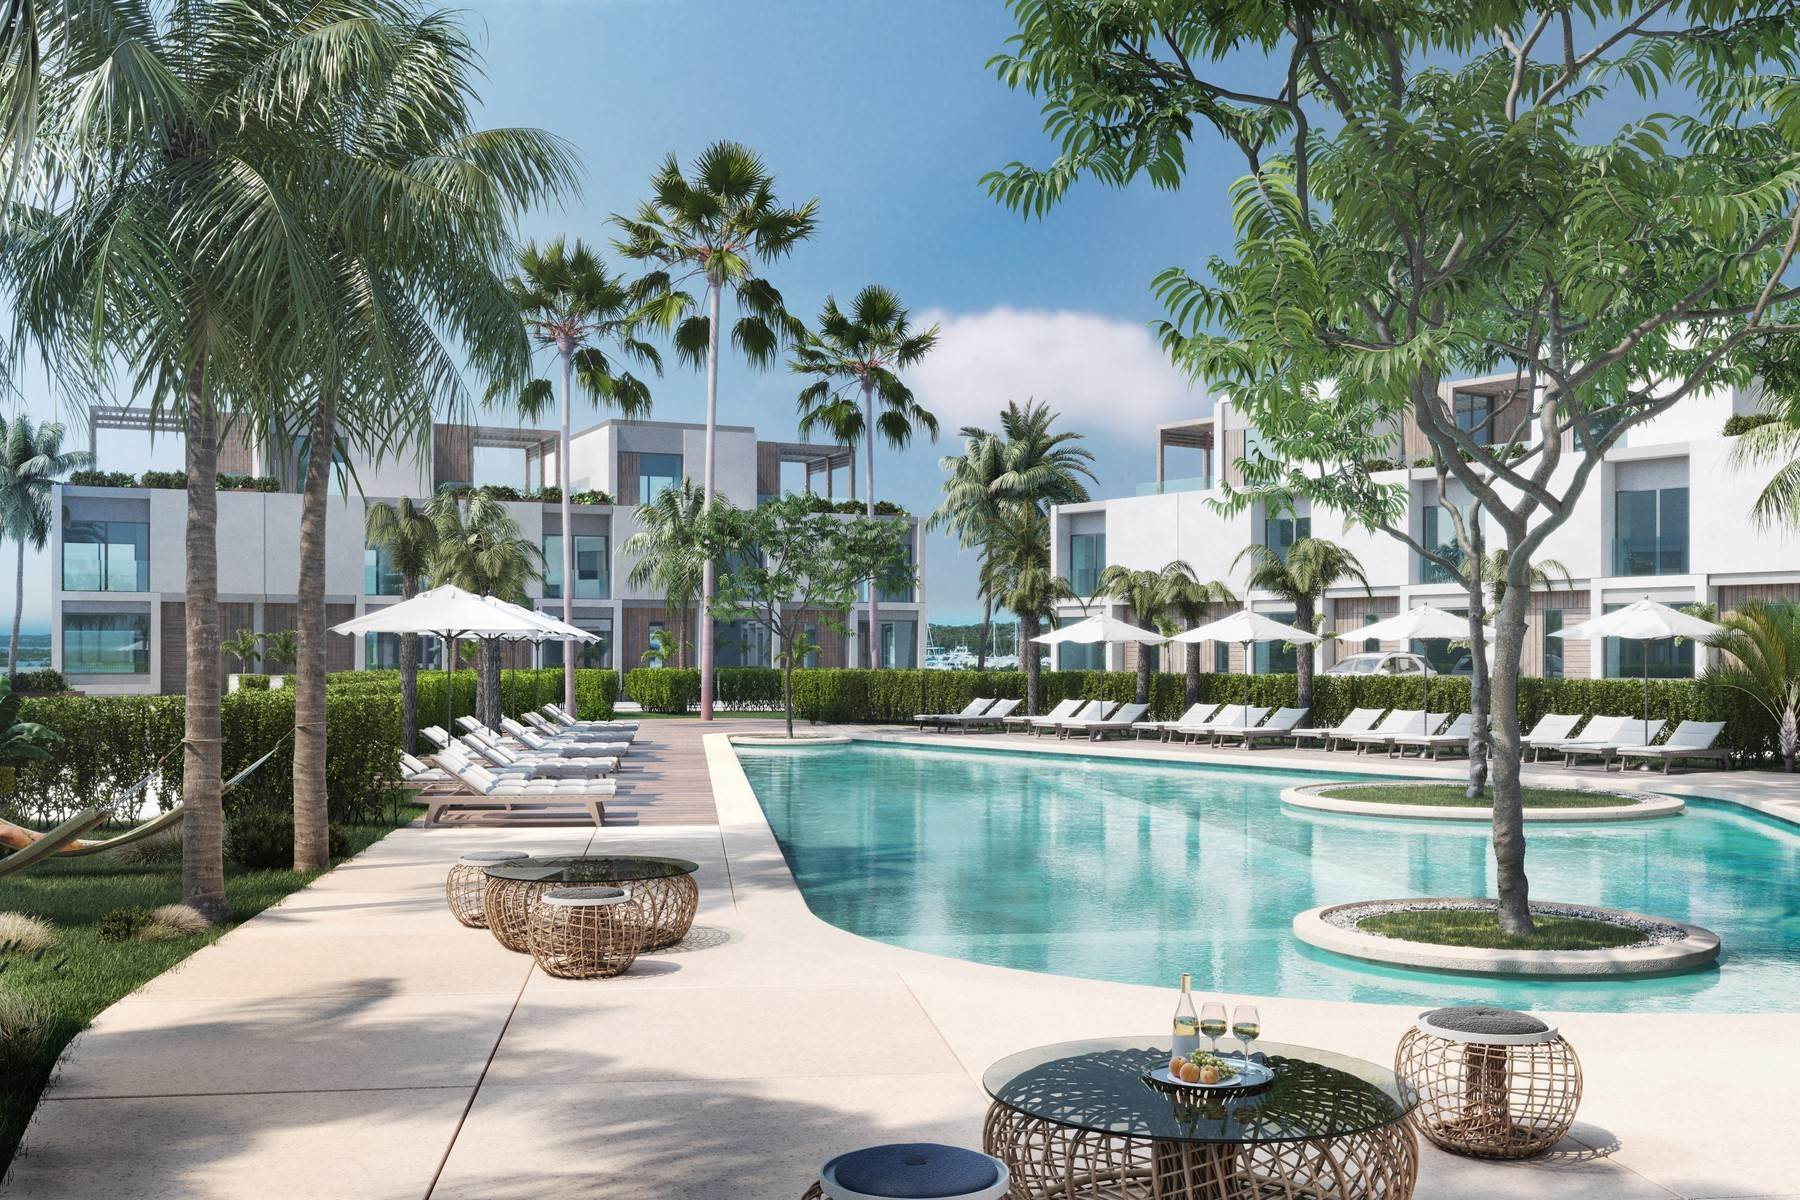 8. Condominiums for Sale at SOUTH BANK - BOATHOUSES - TWO BEDROOM PLUS ROOFTOP TERRACE - E1 South Bank, Long Bay, Providenciales Turks And Caicos Islands